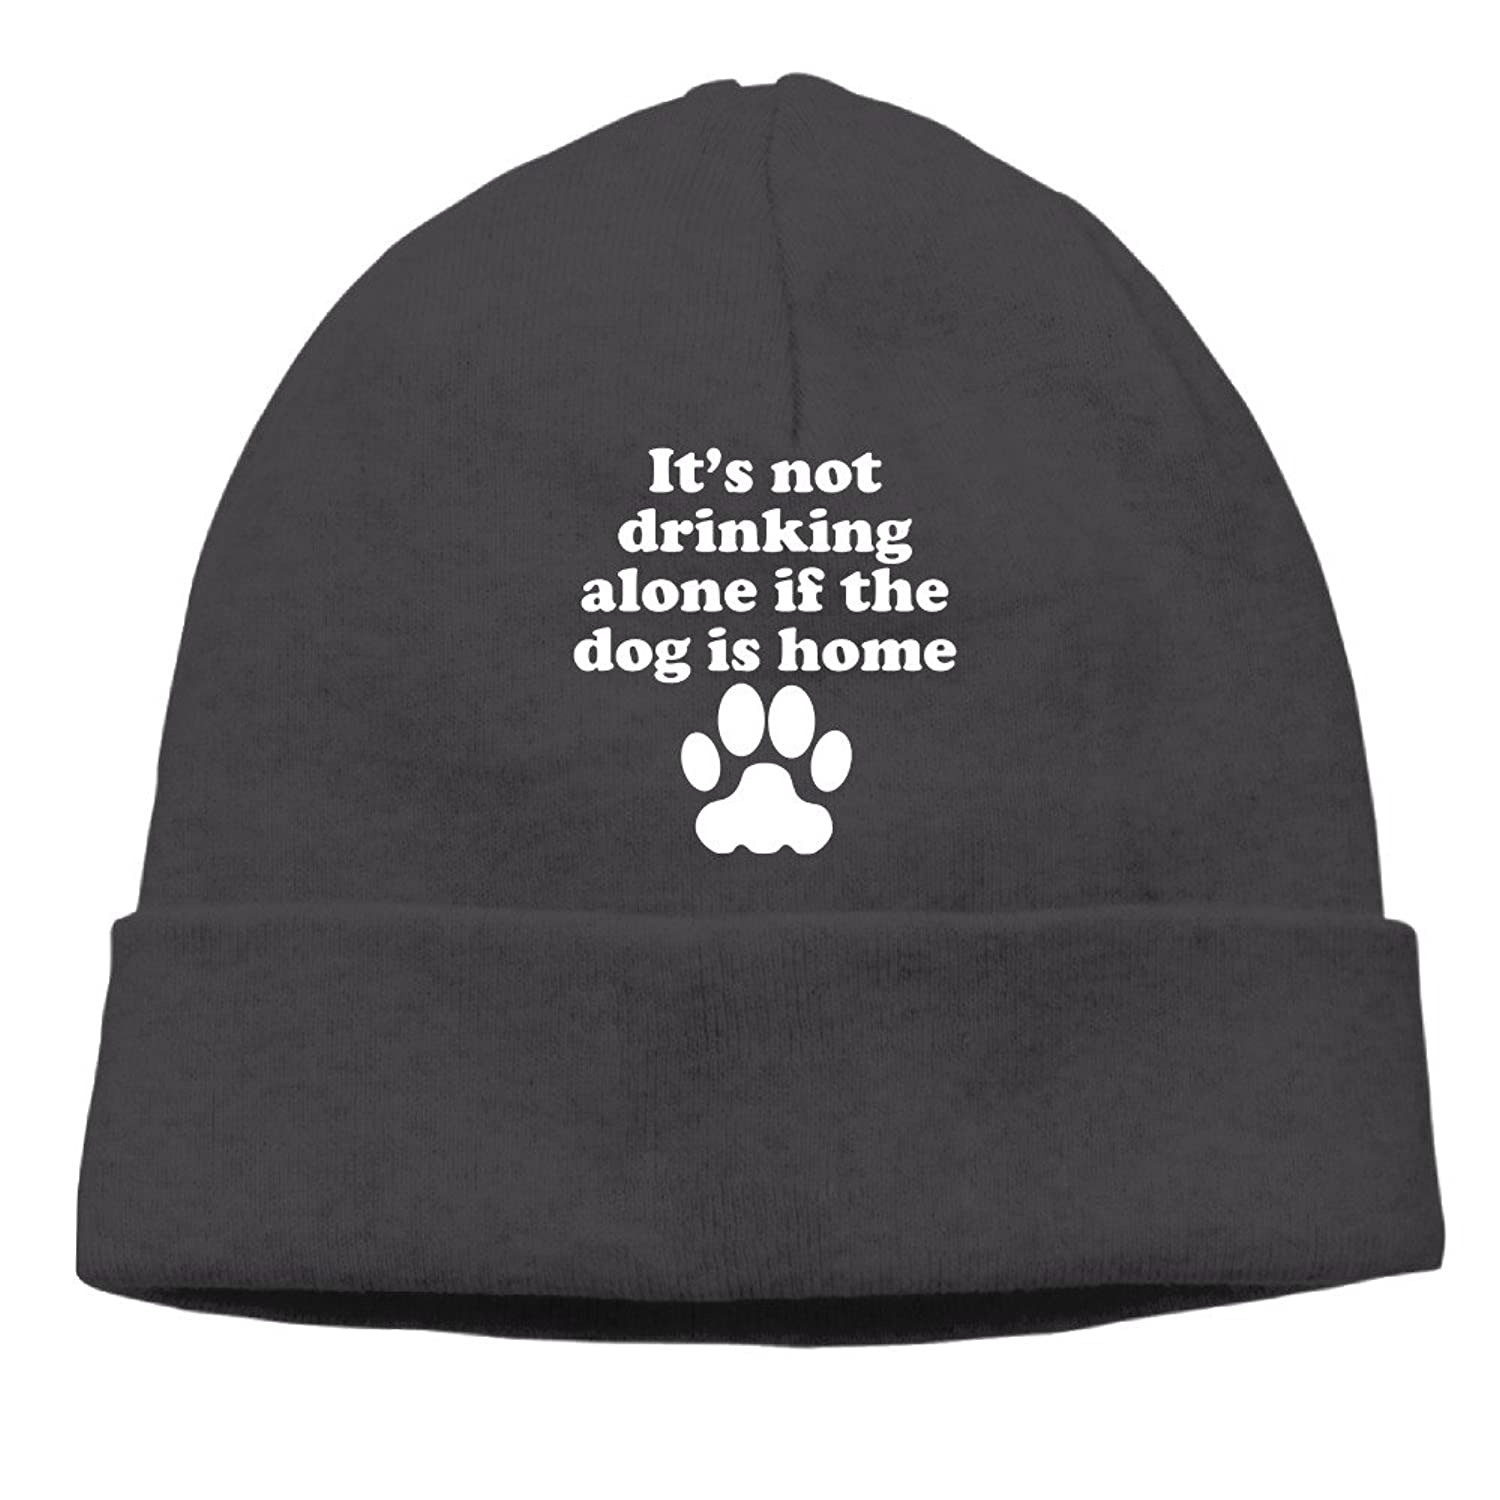 T's Not Really Drinking Alone Funny Saying Beanies Cap